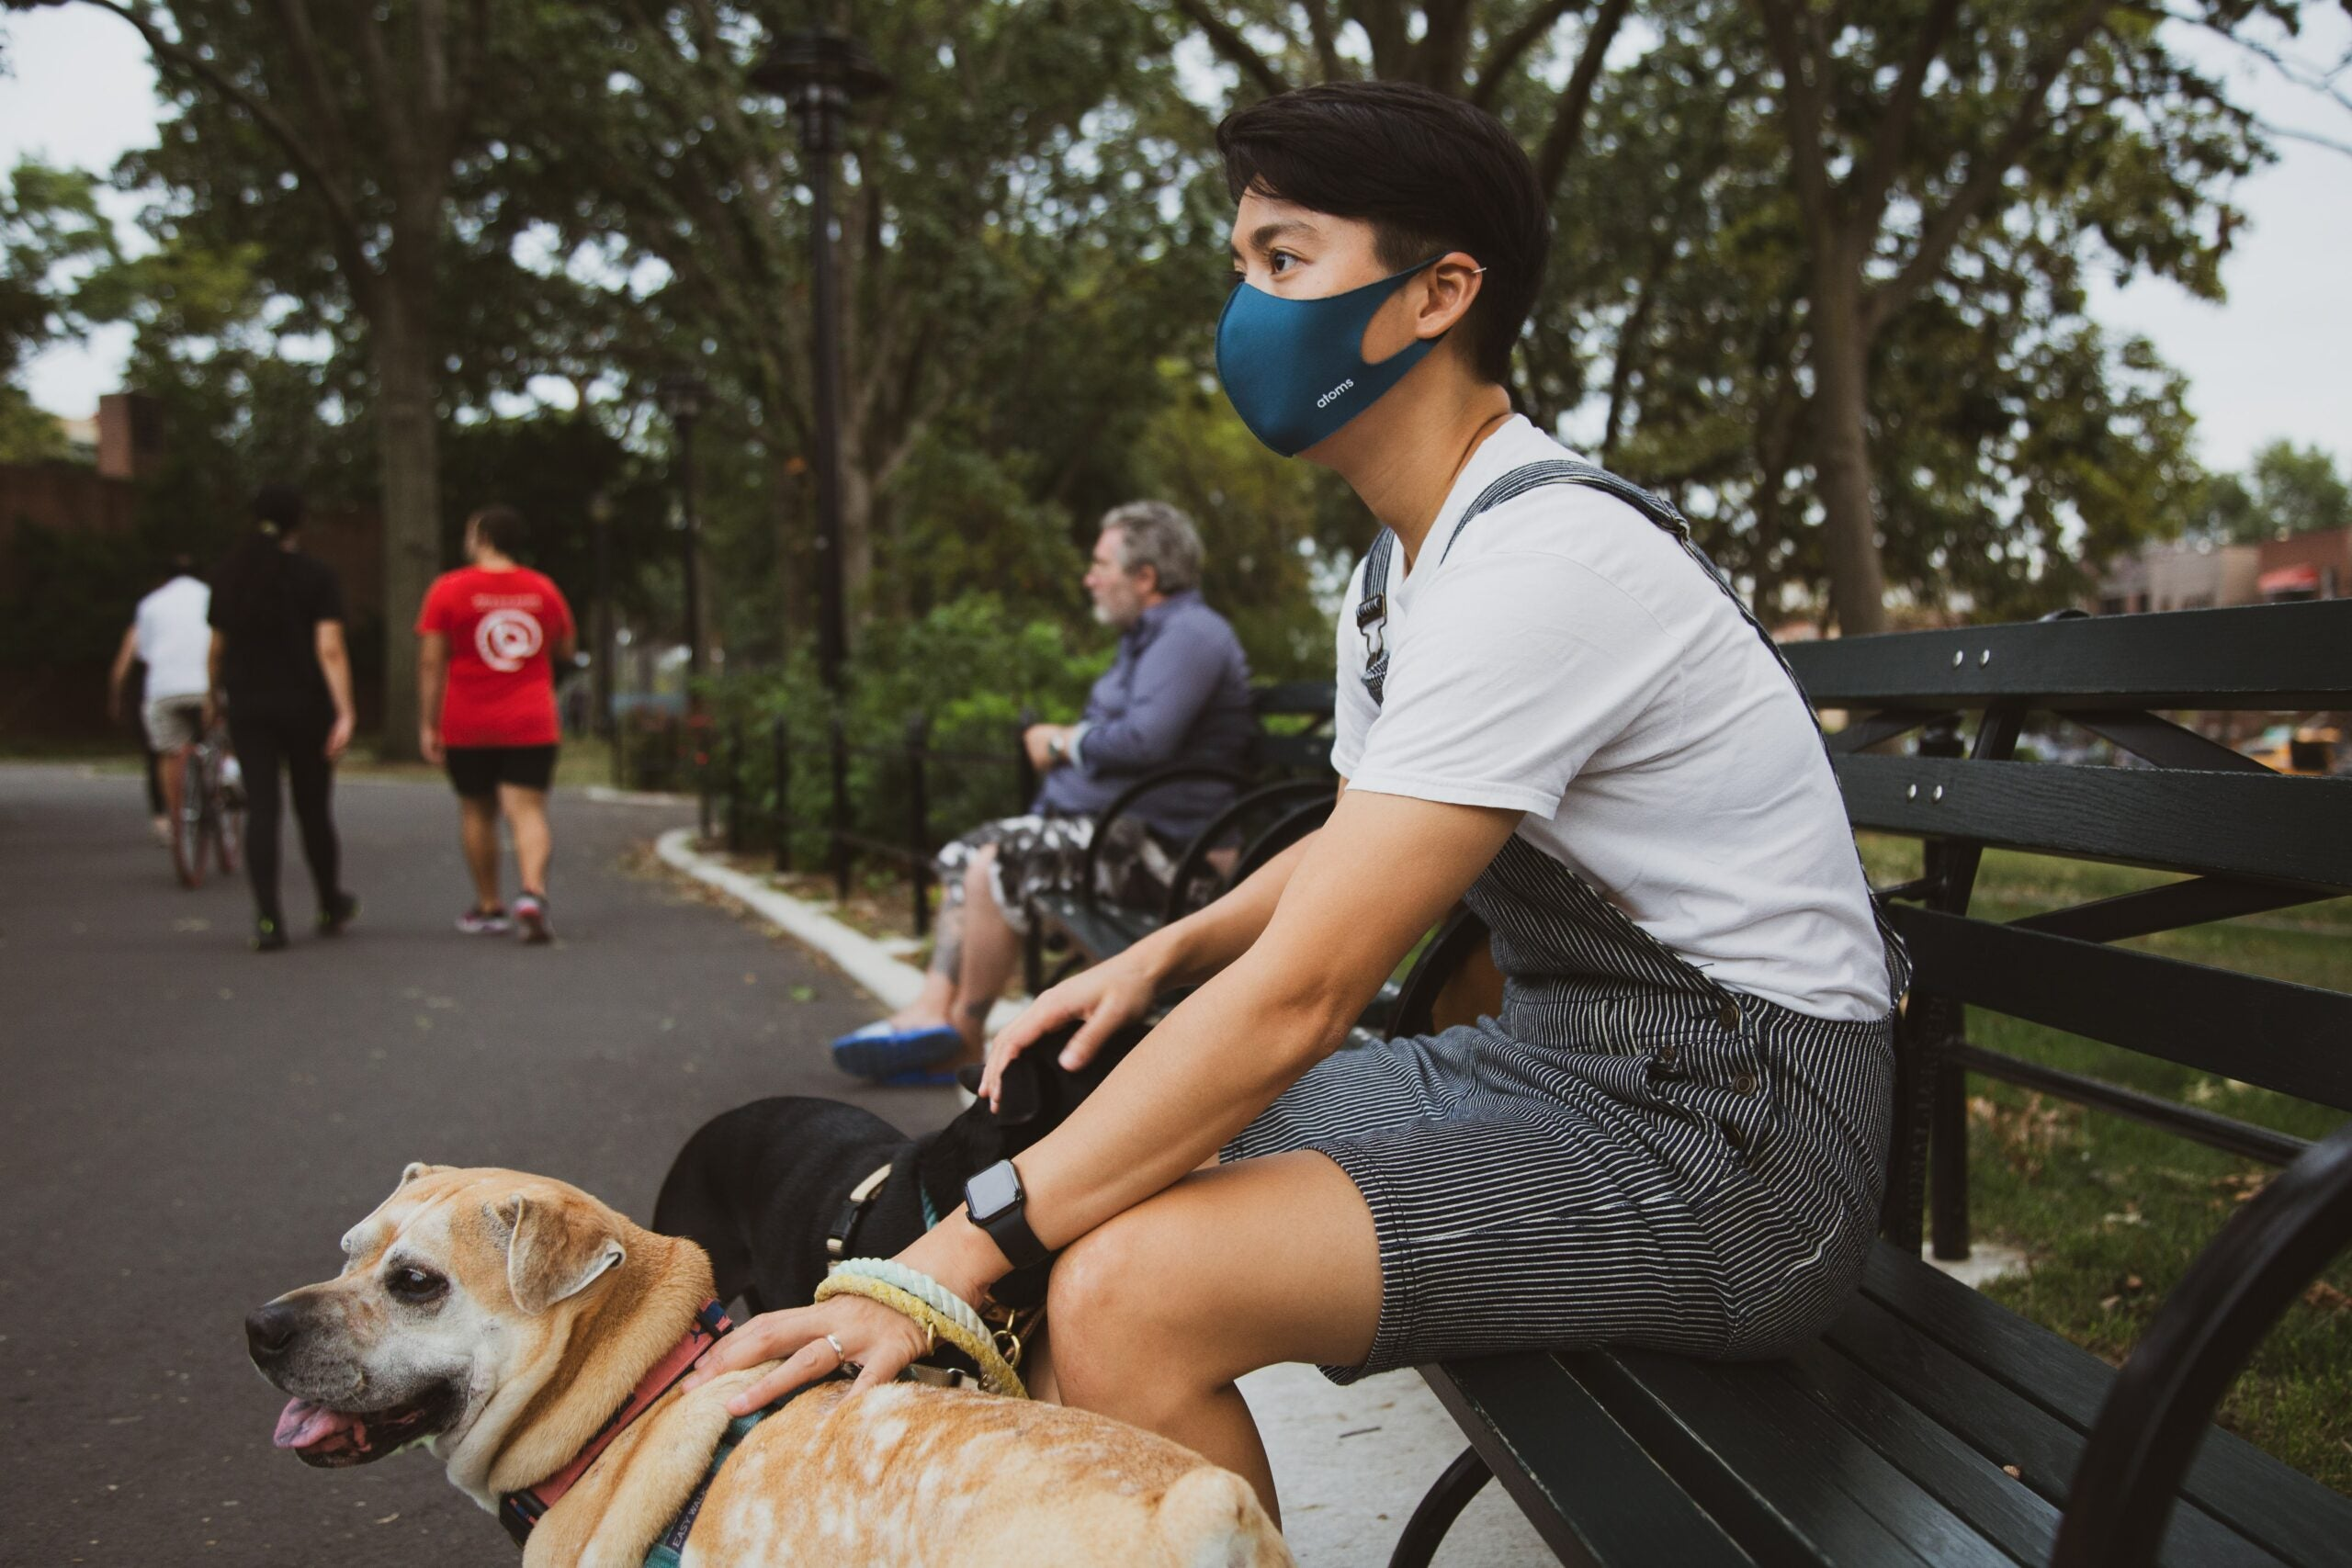 a person in the park wearing a mask